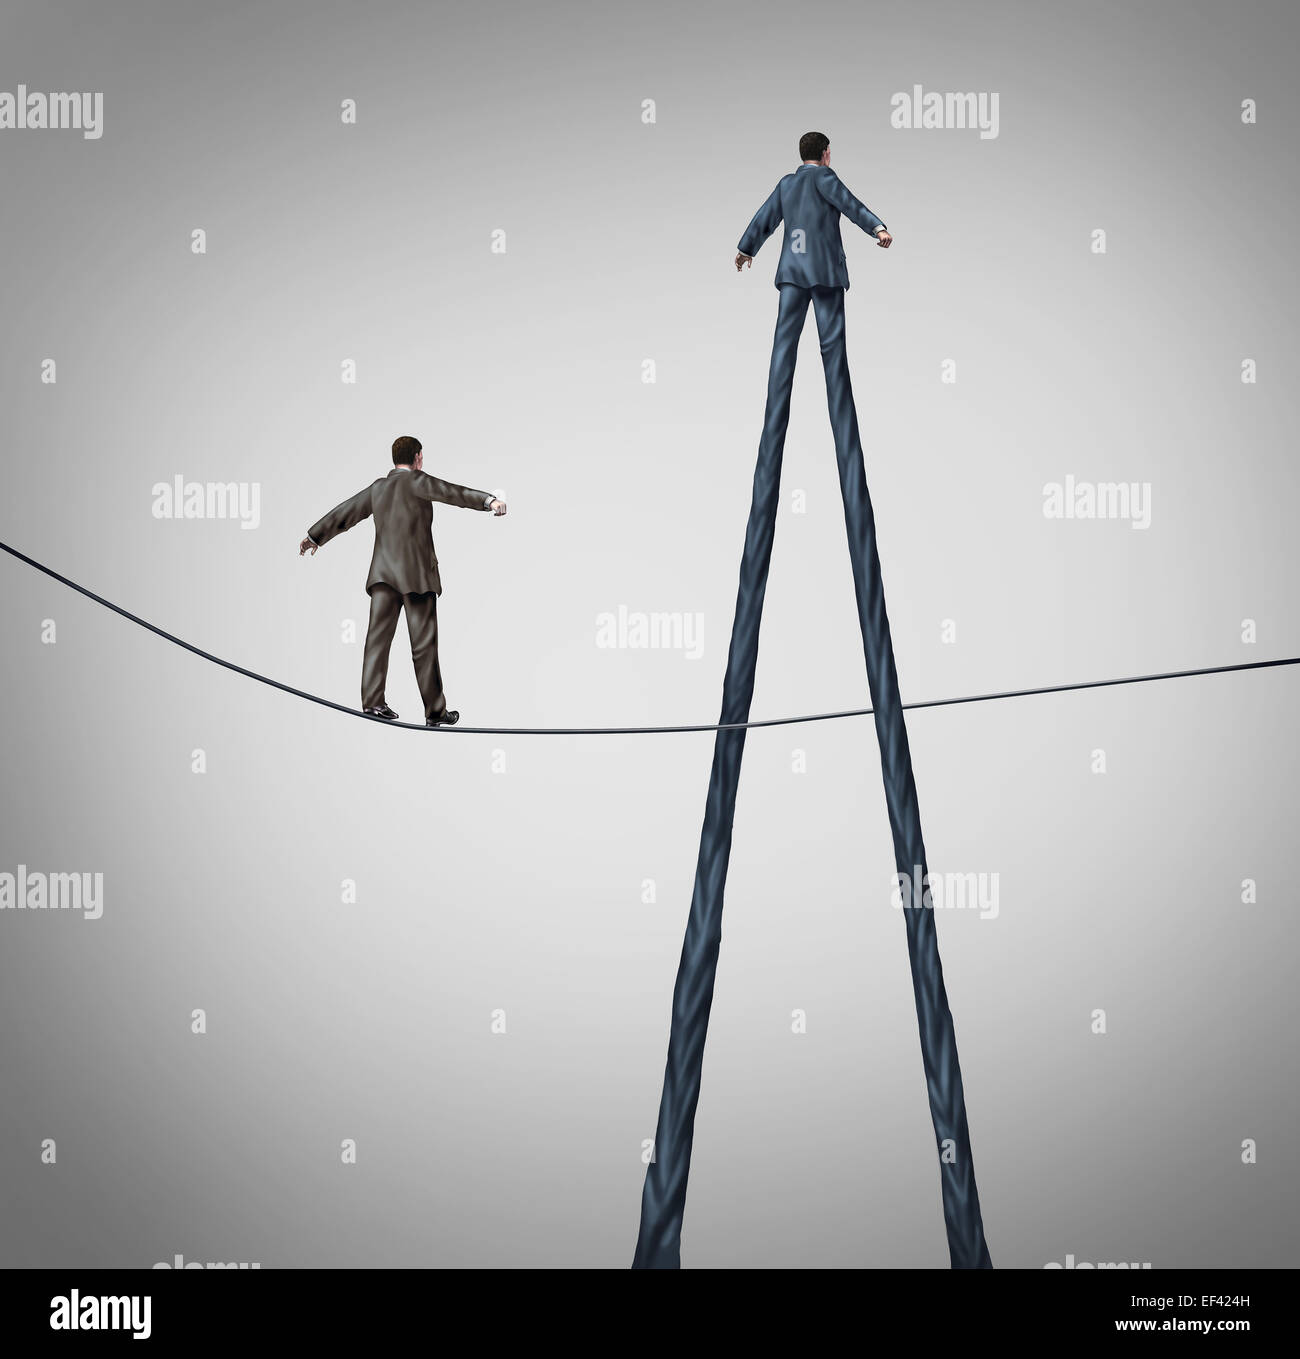 Career advantage business concept as a businessman walking on a high wire tightrope being passed by another better - Stock Image